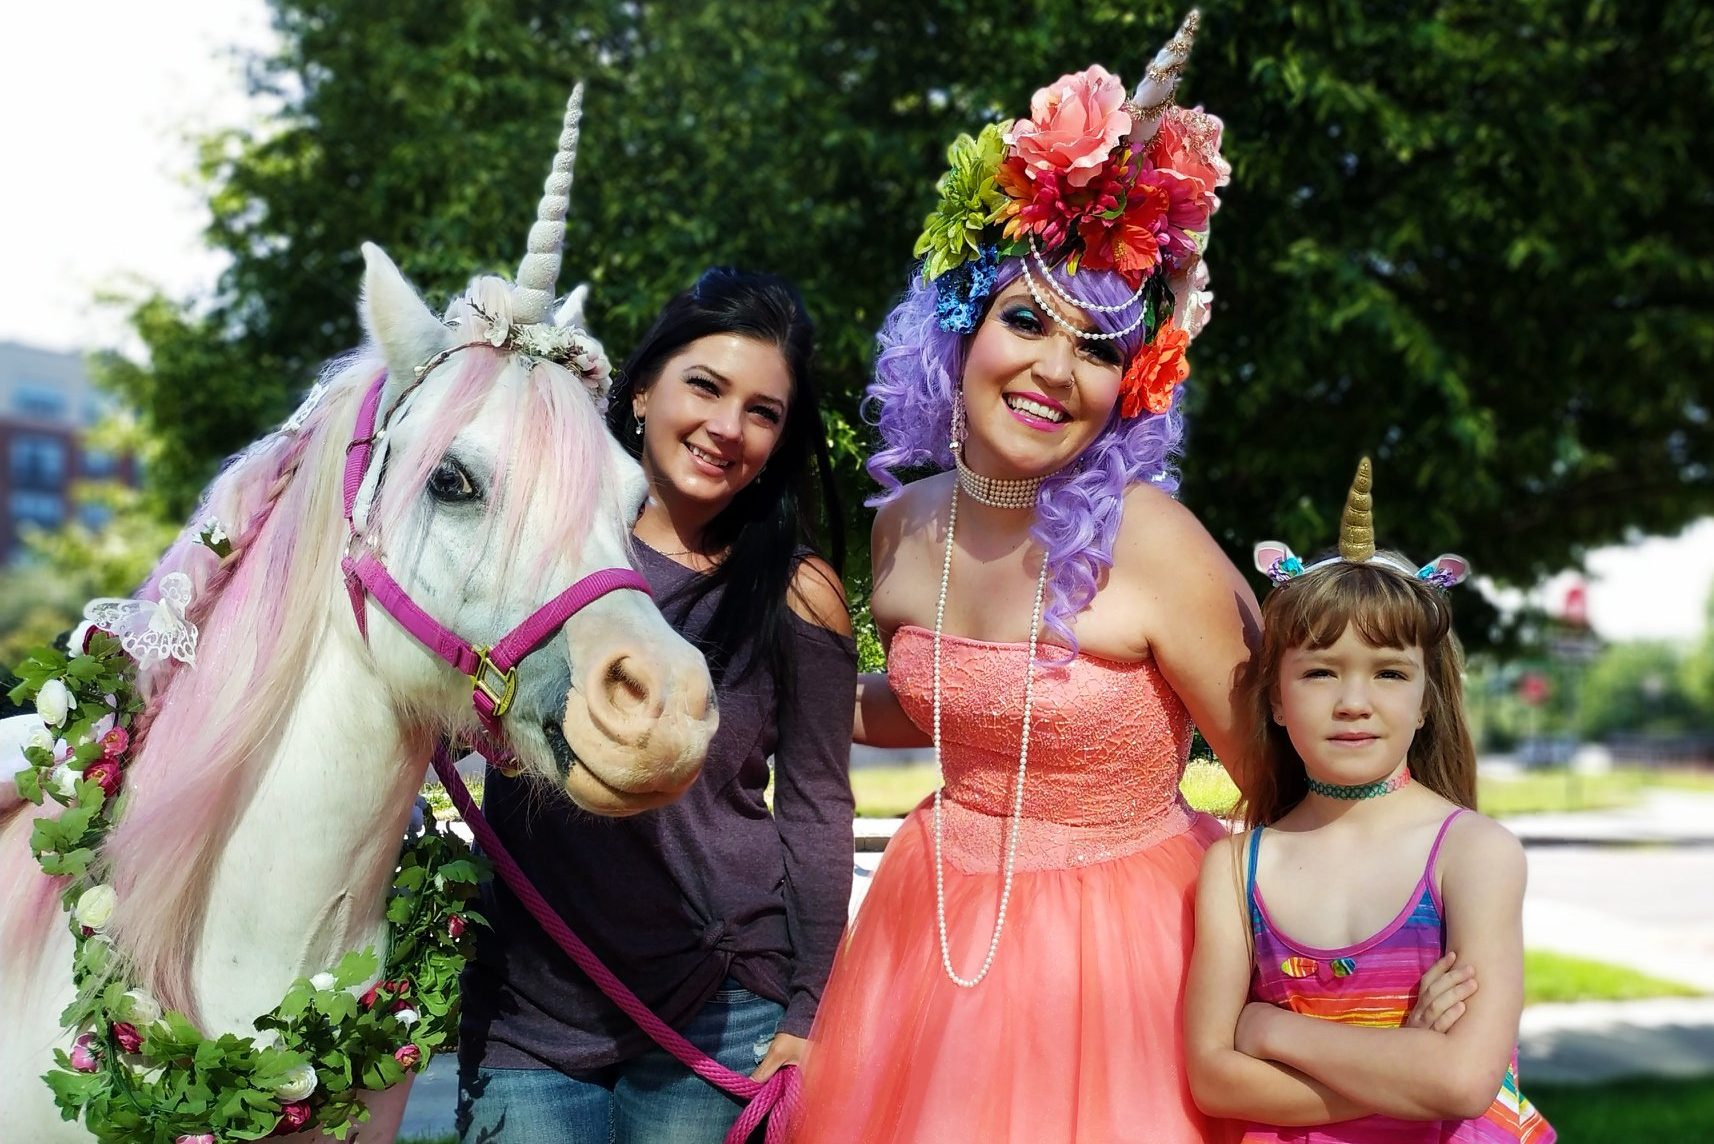 Come Pet Real Unicorns And Get A Photo Opp With Mermaids At Denver's Unicorn Festival This Saturday